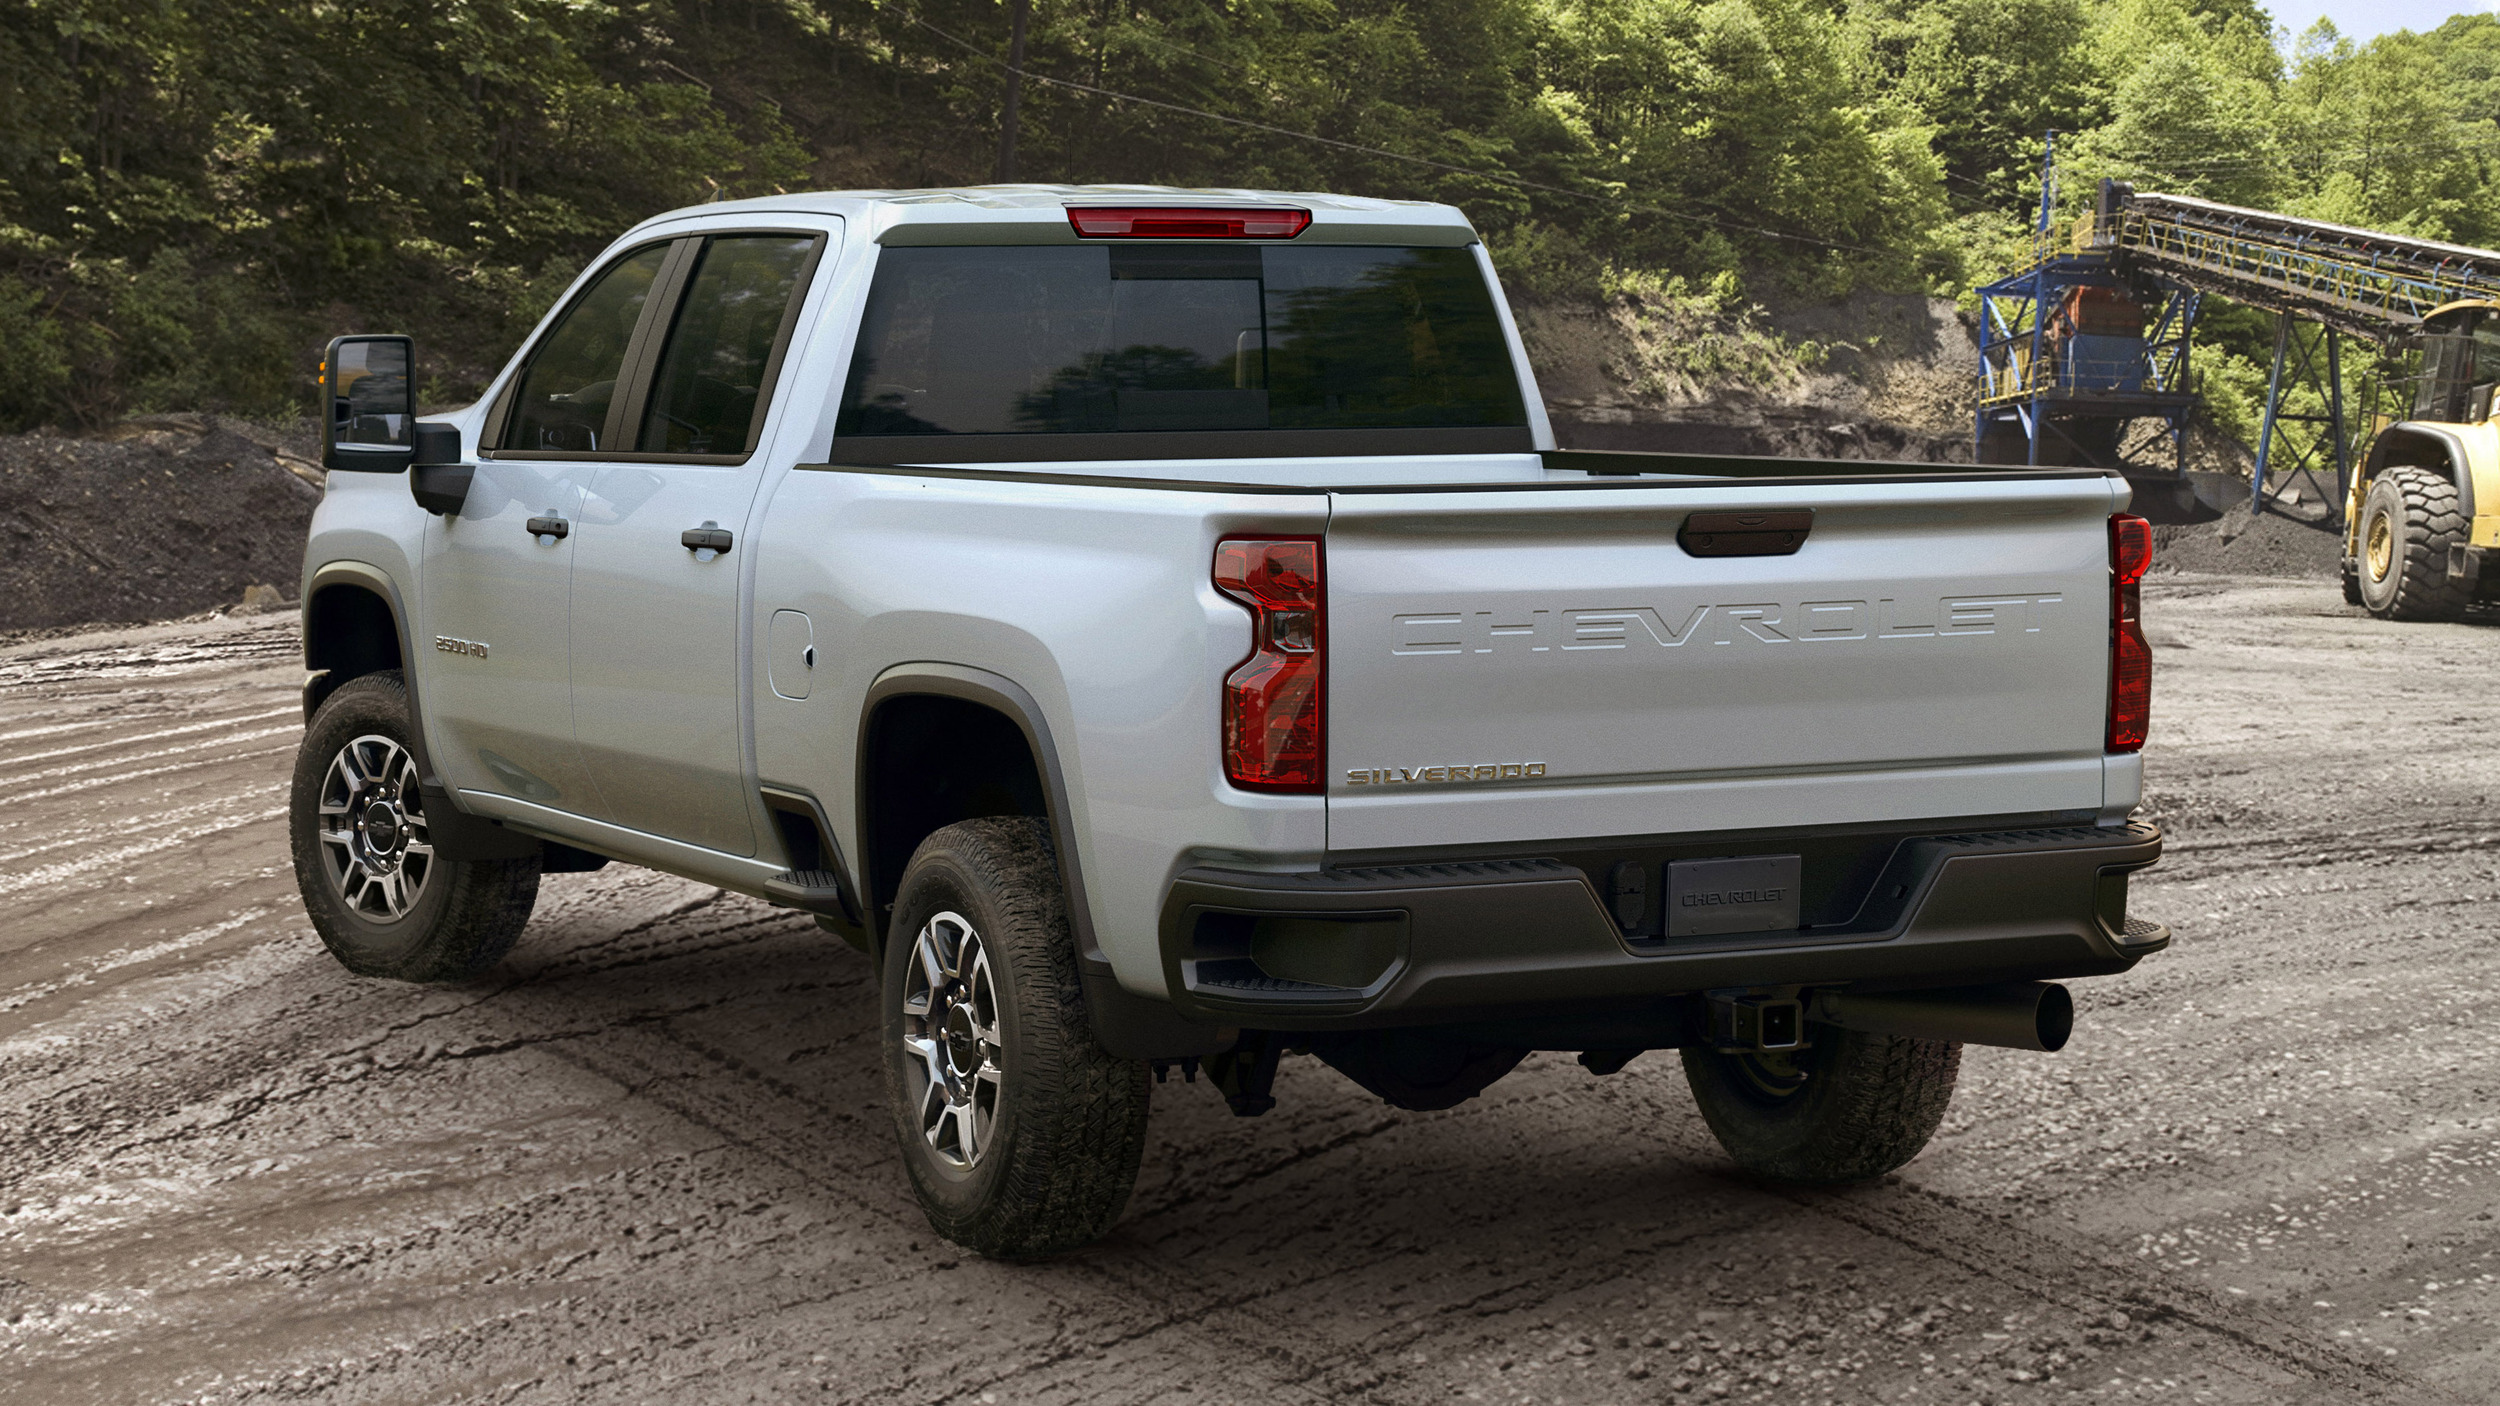 2020 chevy silverado hd base price is less than old model